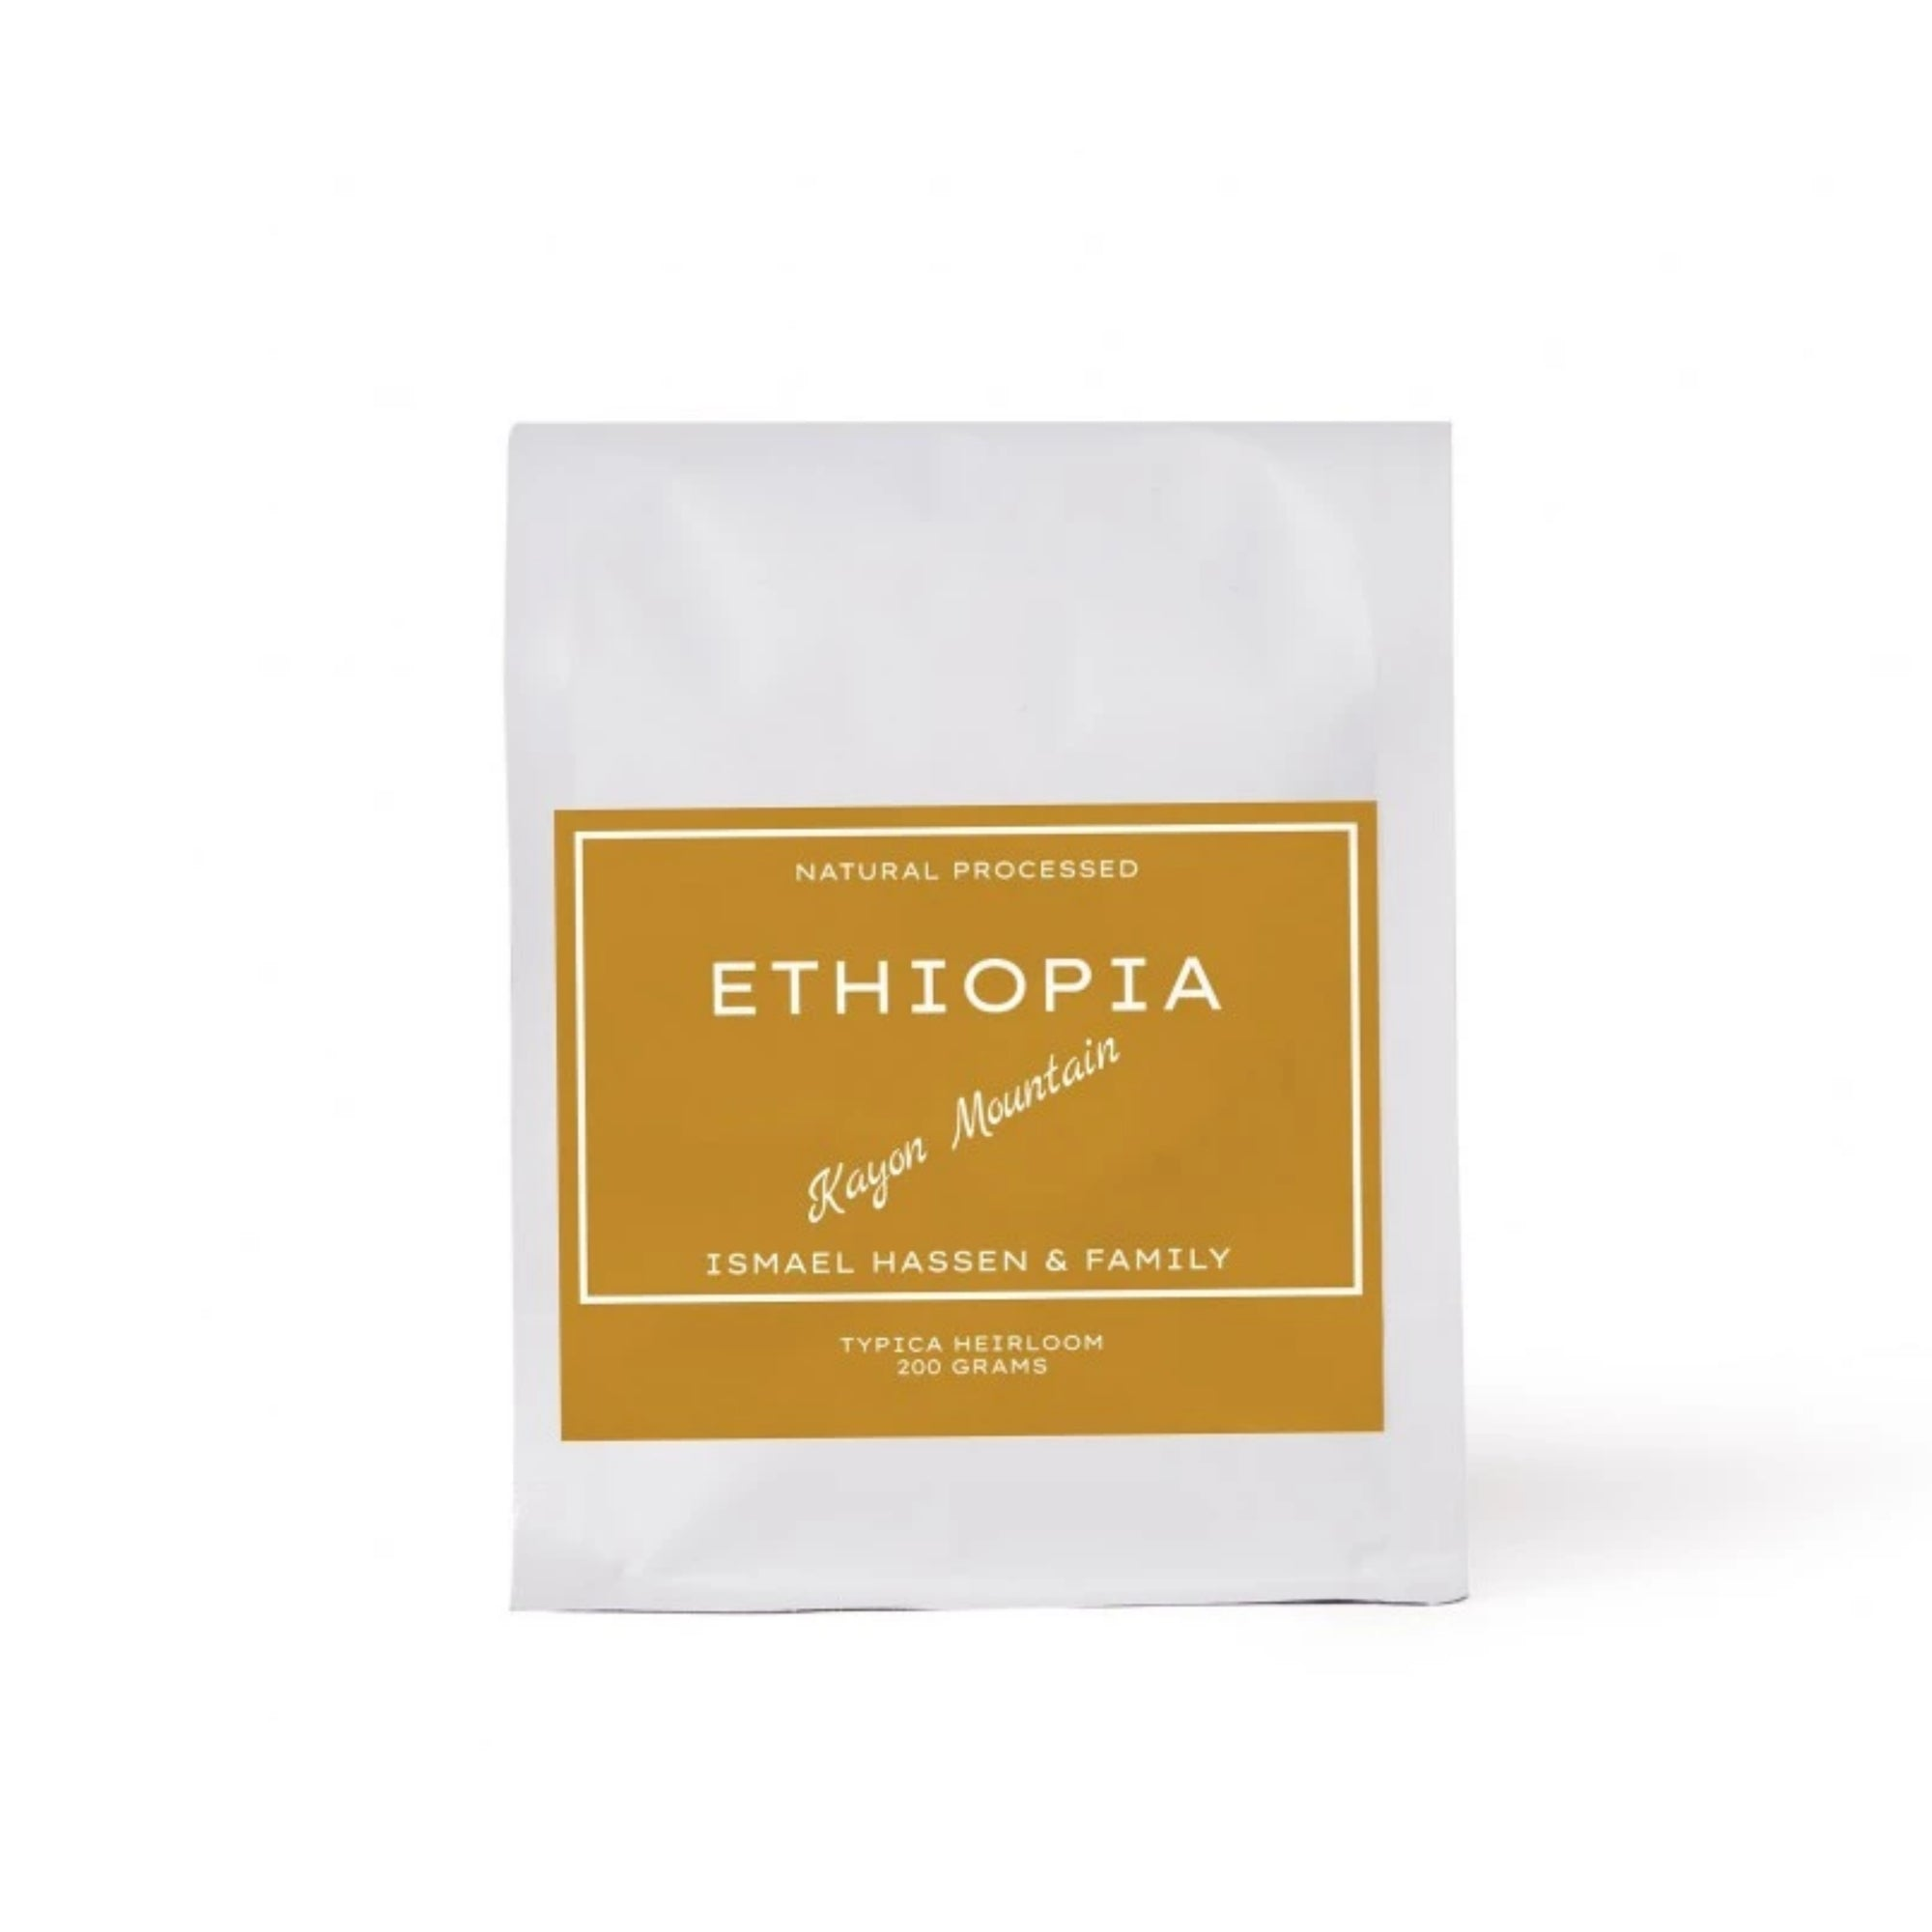 Ethiopia | Kayon Mountain / Natural Process / ORGANIC